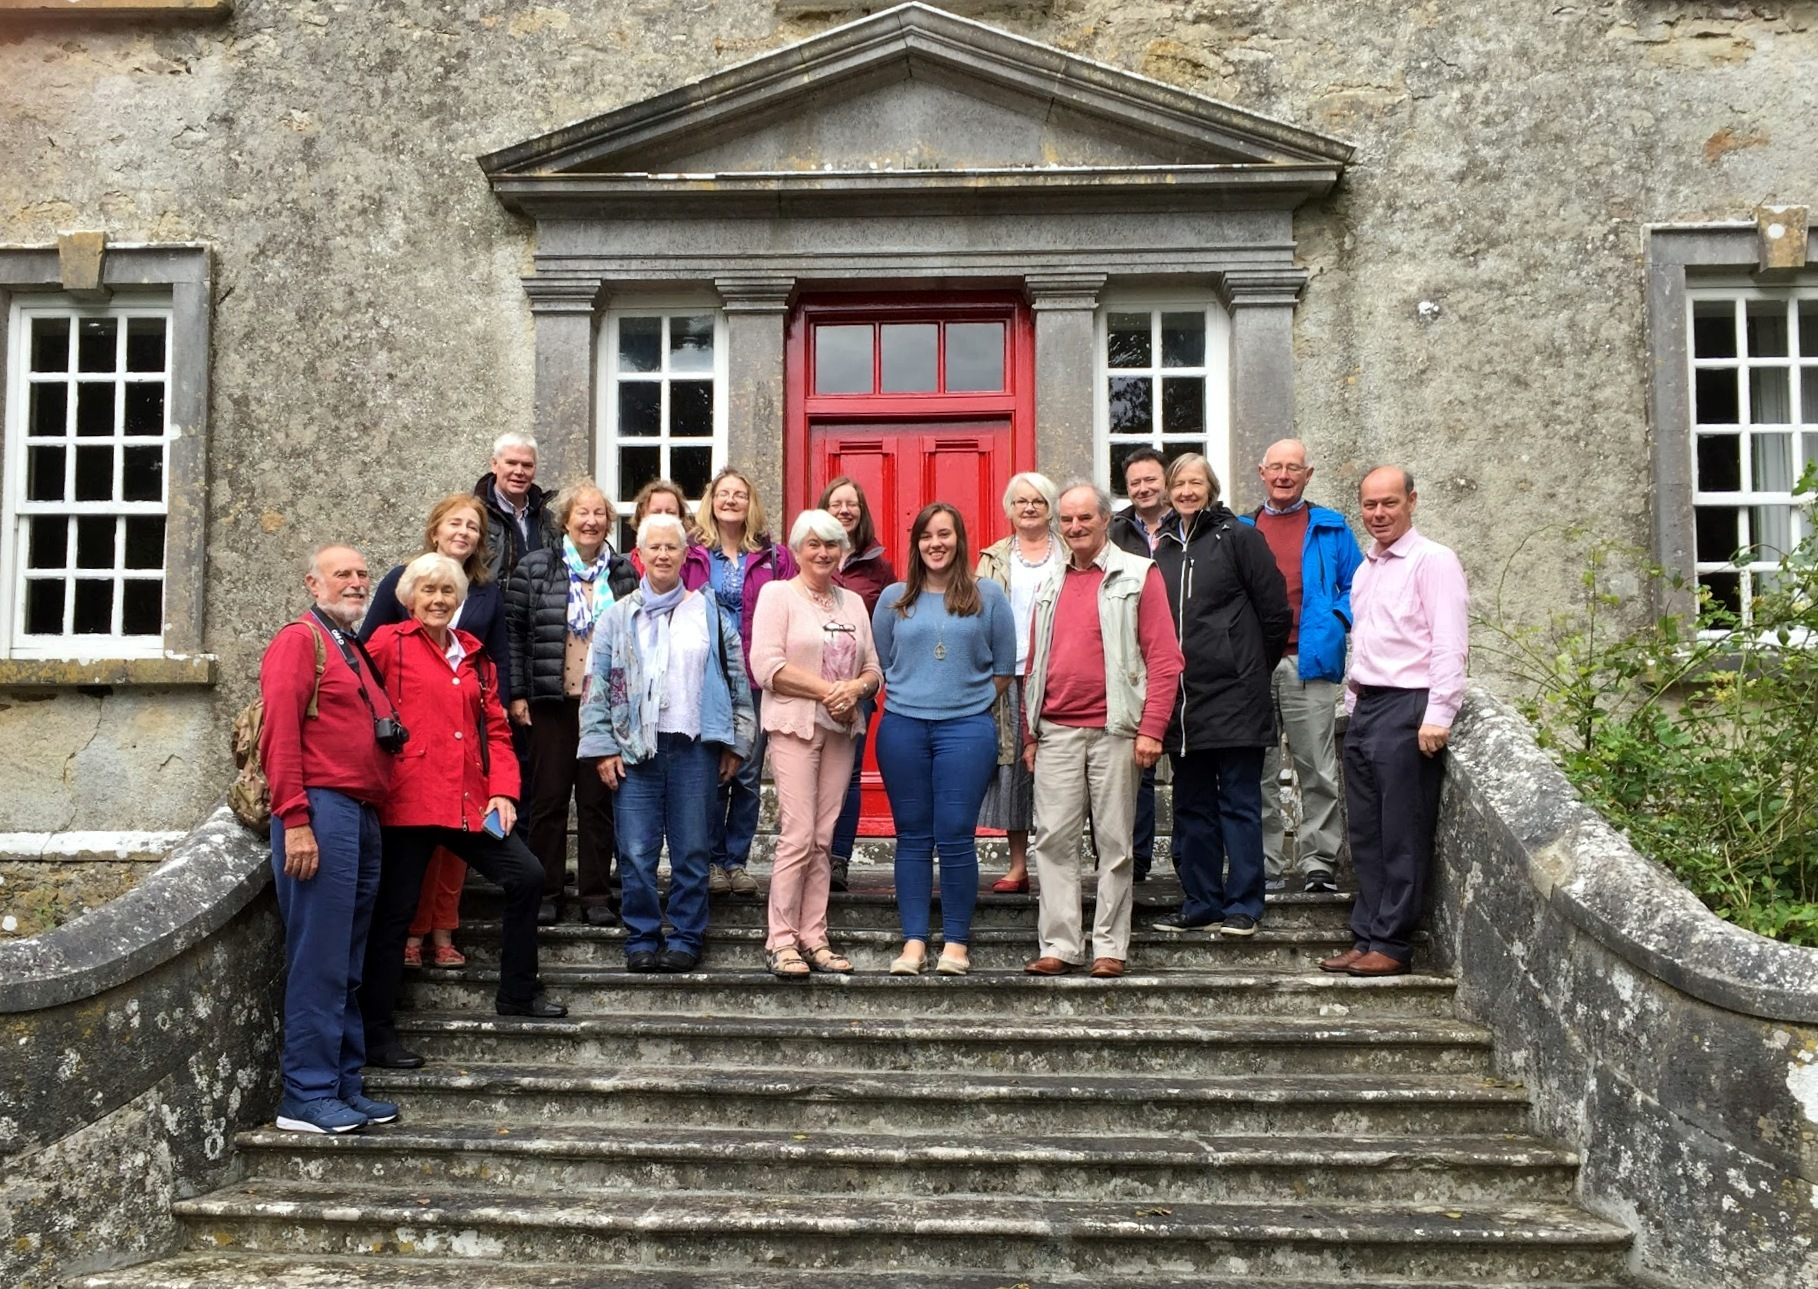 5-IGS-Limerick-Chapter-Trip-to-Ledwithstown-House-Sepember-2017.jpg#asset:7797